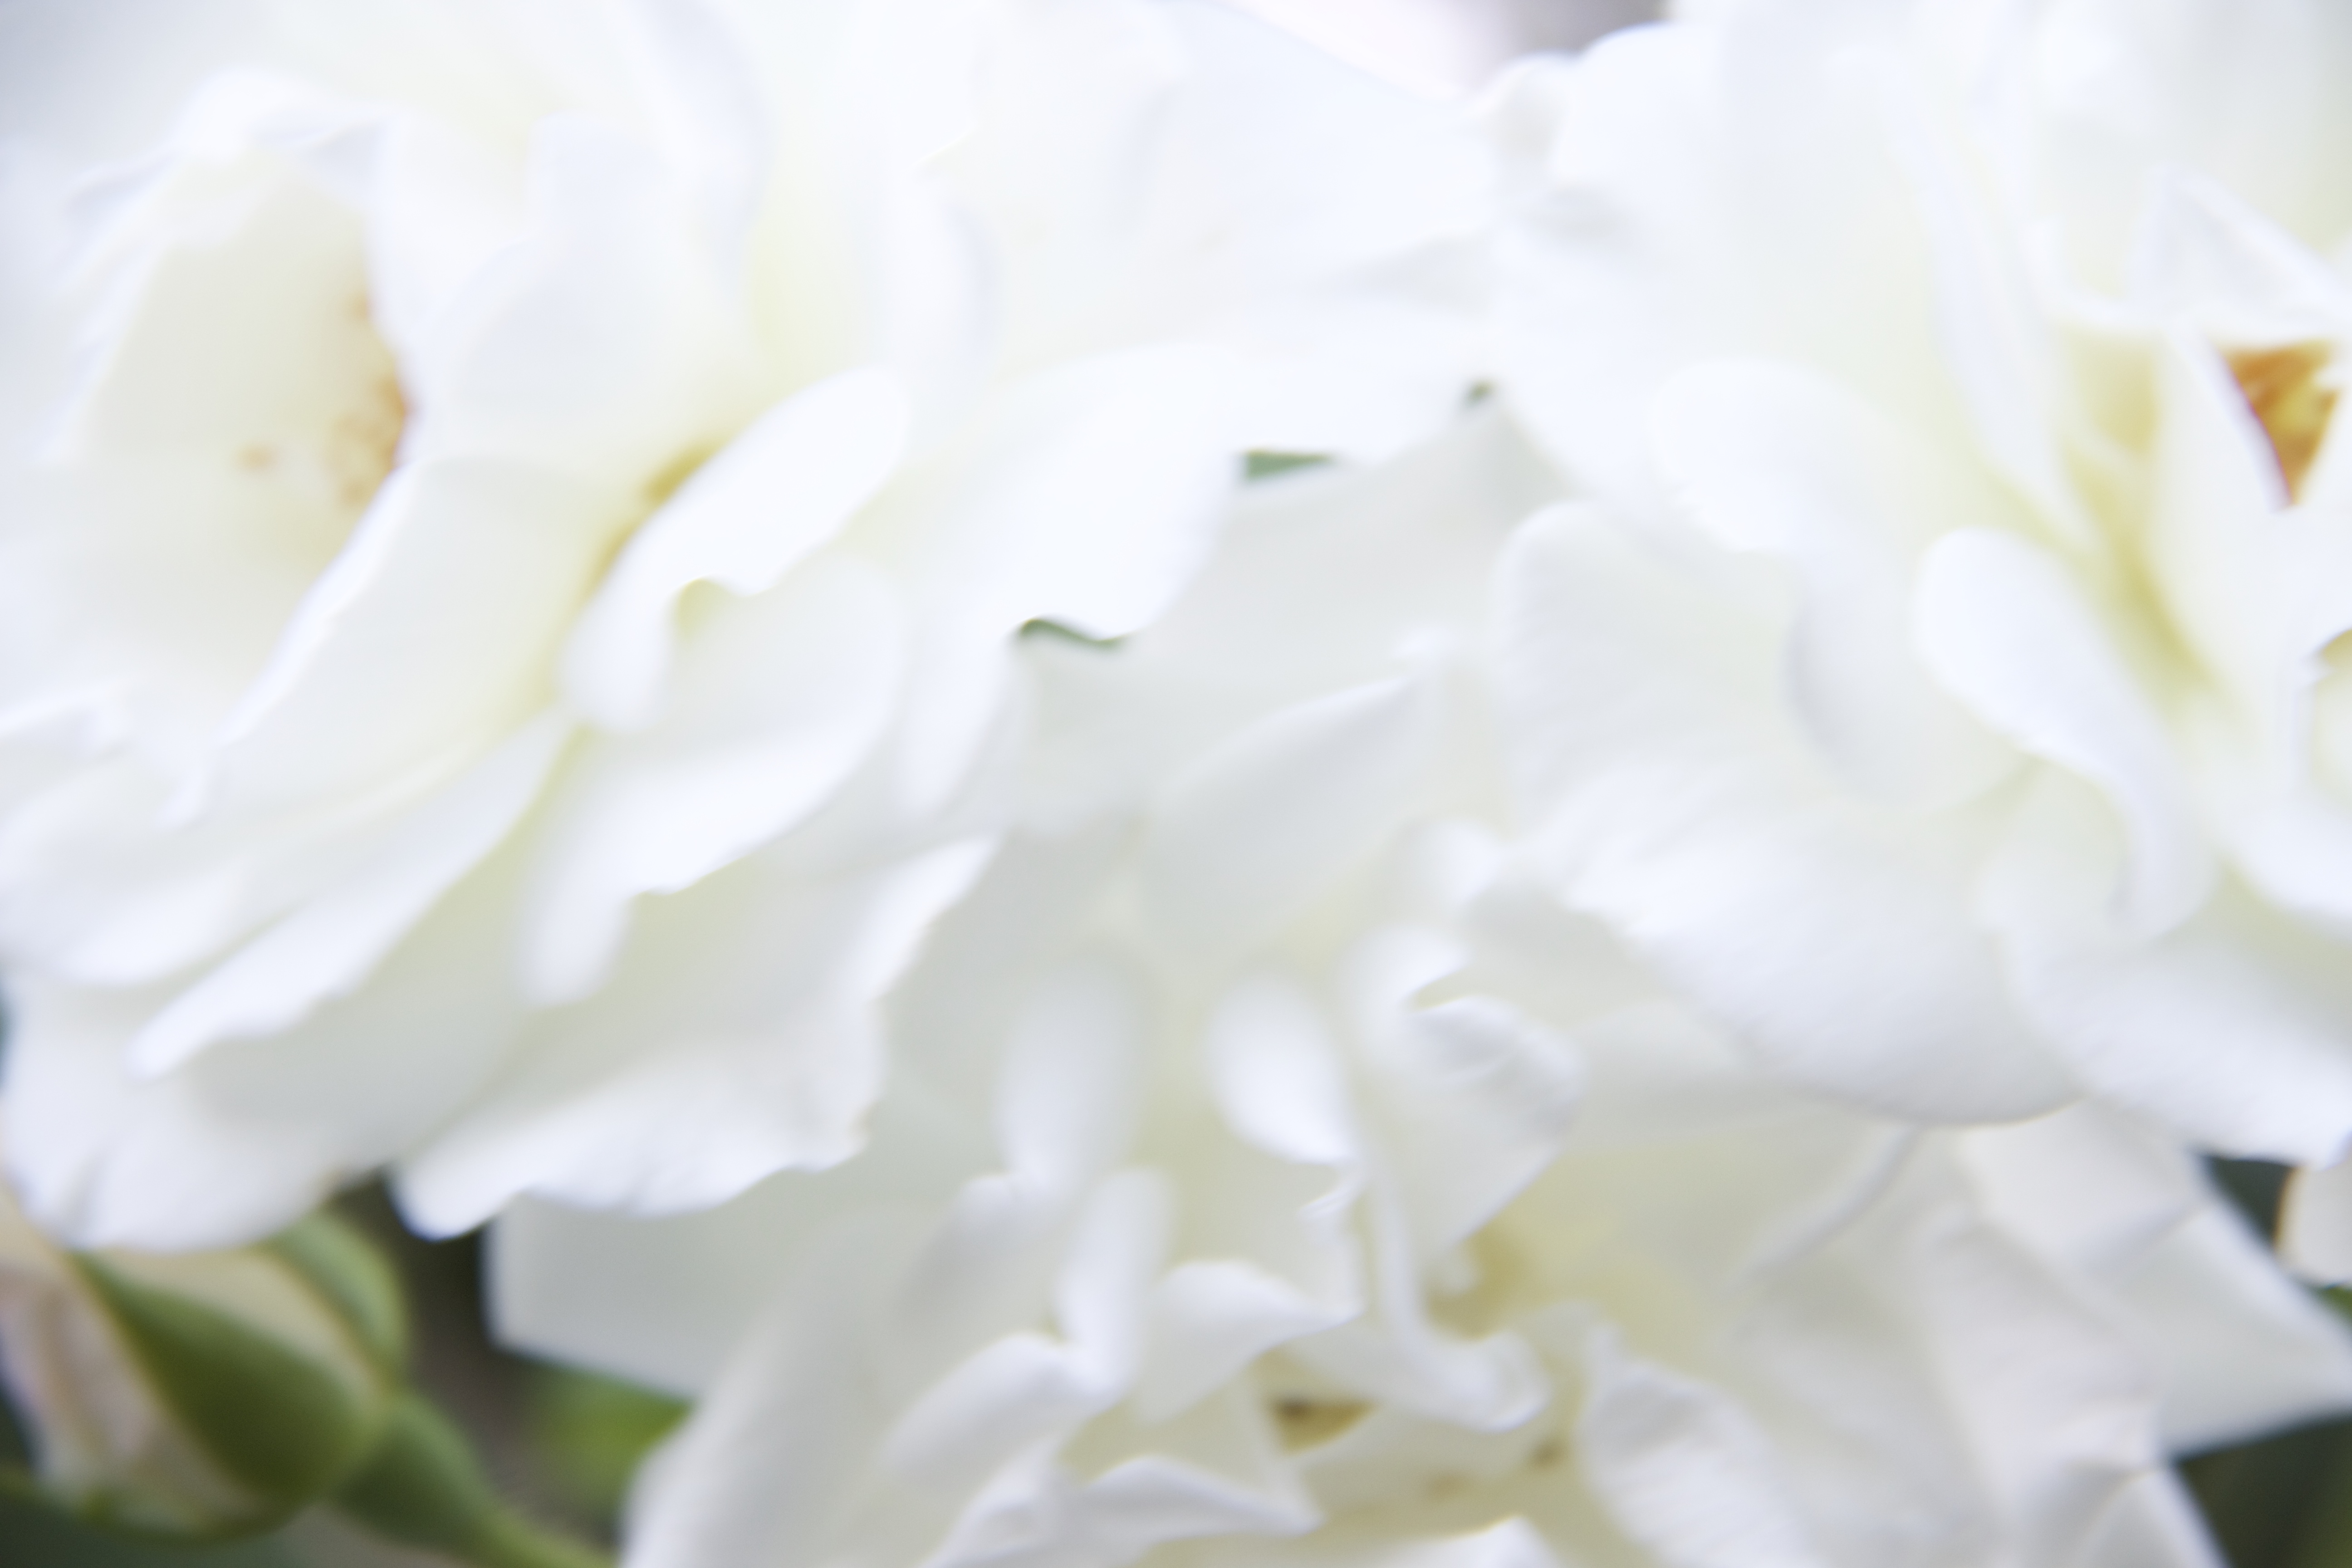 Close up white rose petals